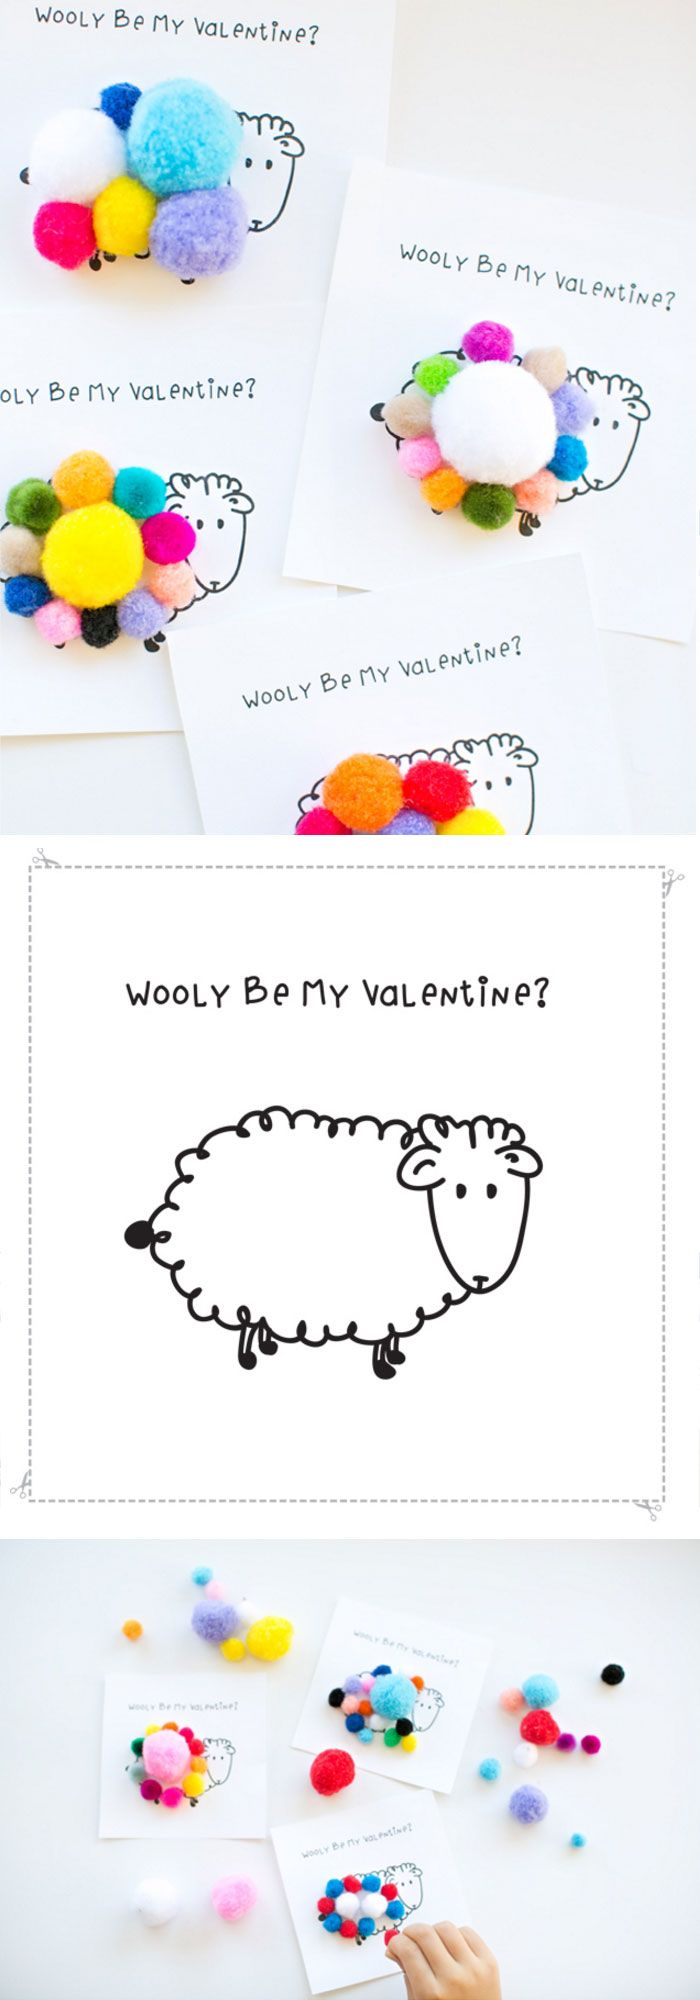 Wooly Be My Valentine | DIY Valentines Cards for Kids to Make | DIY Valentines Ideas for Kids to Make